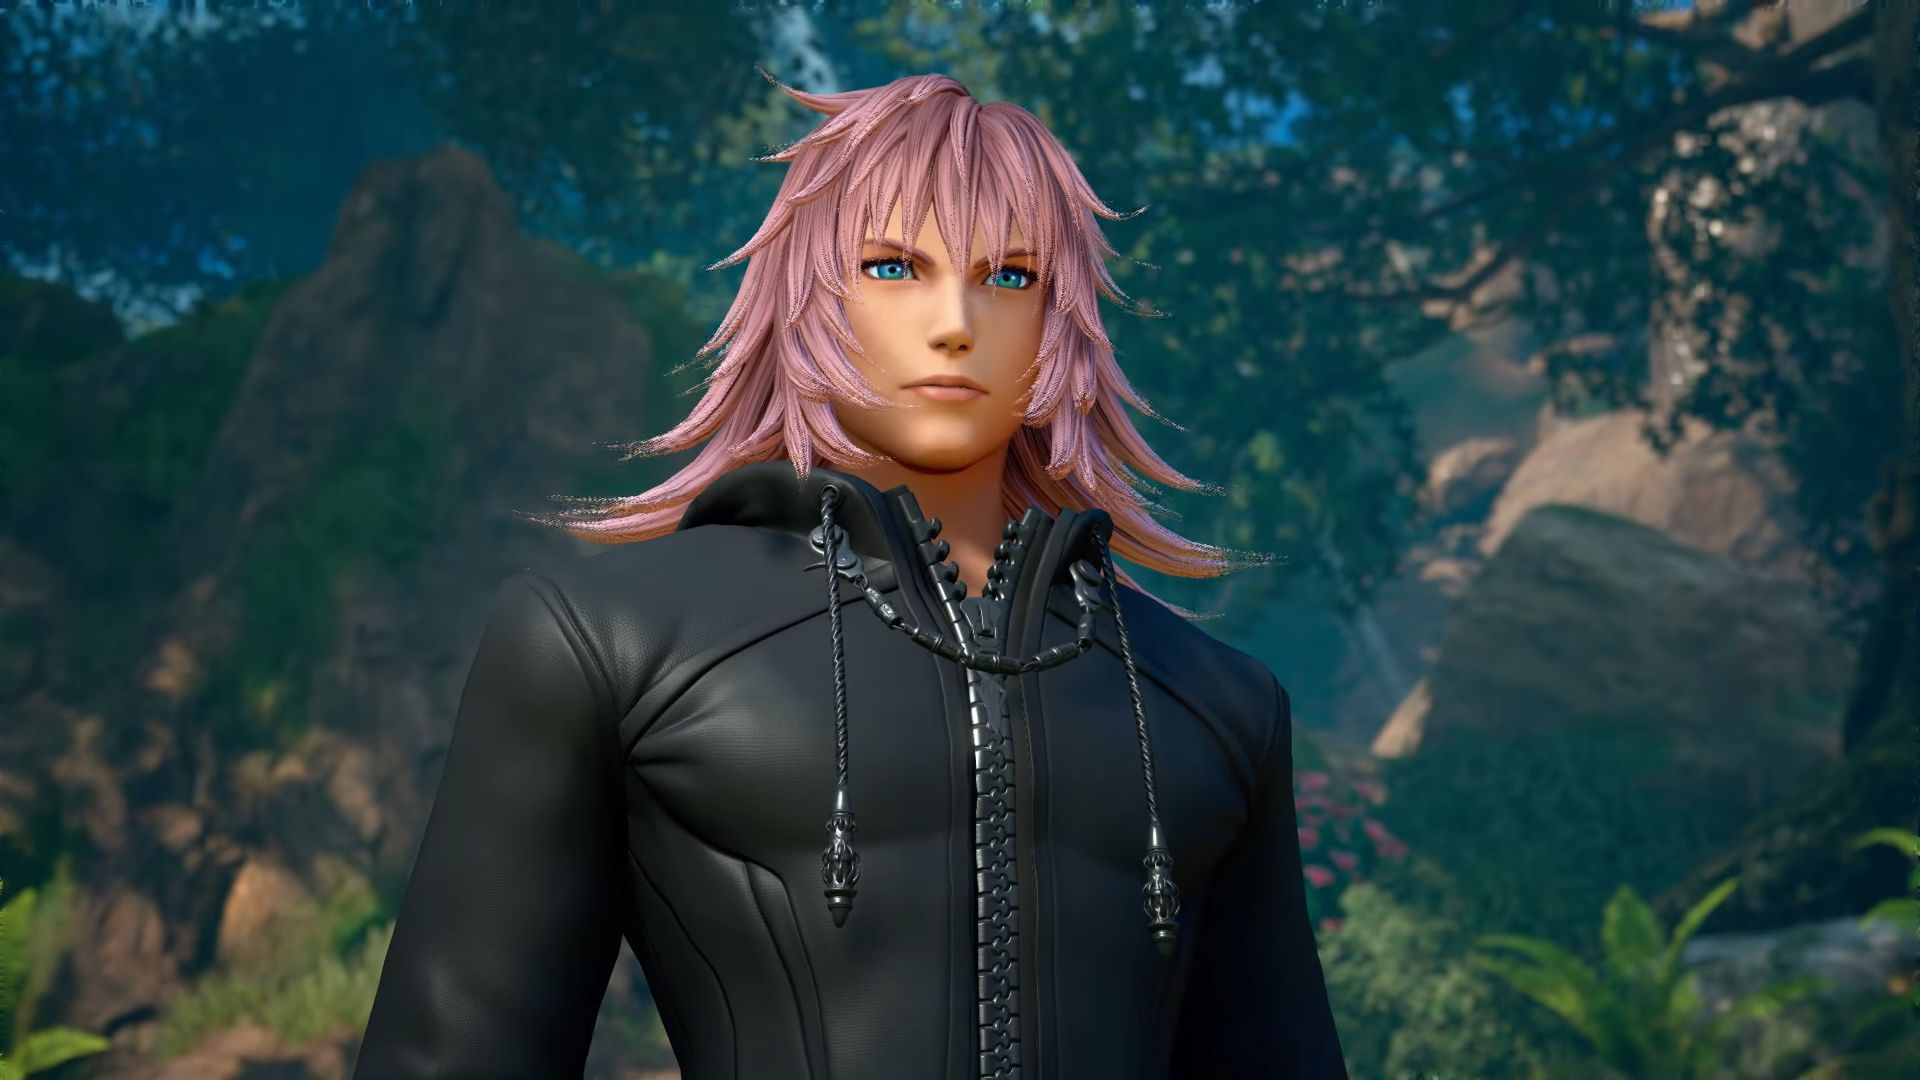 New Kingdom Hearts III Trailer With English Subtitles and